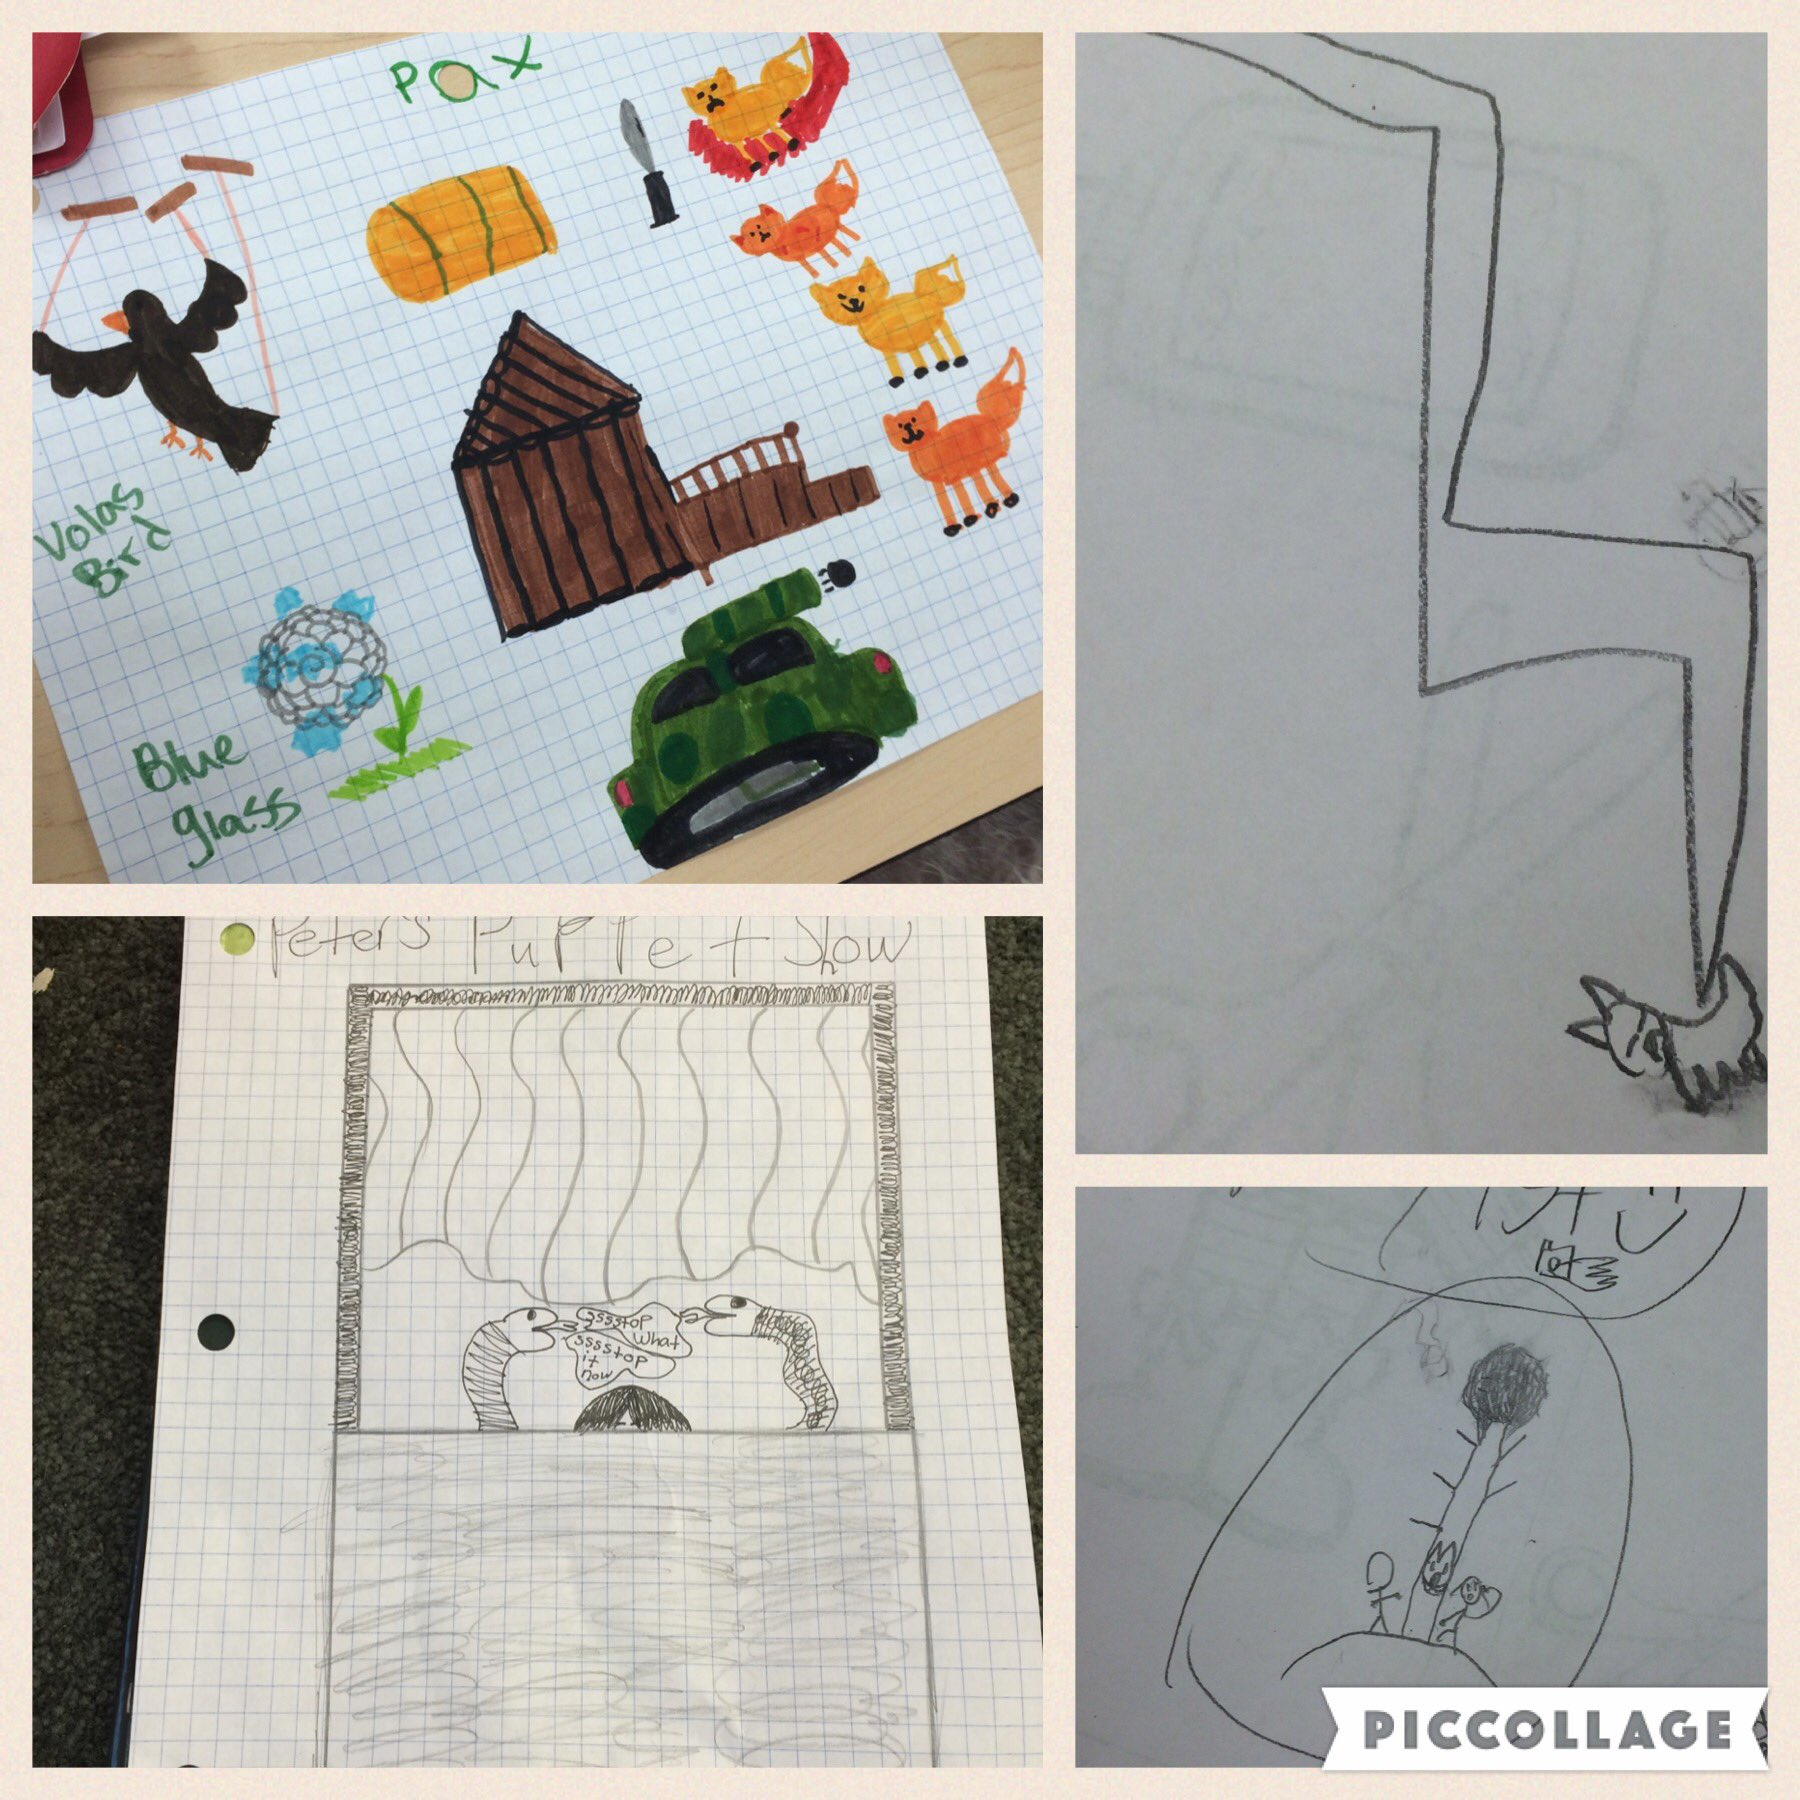 Student visualizations during chapters 18 and 19 today. #GRA16 #GRAPax #PaxSlowChat https://t.co/5ZLoNJ9xGR